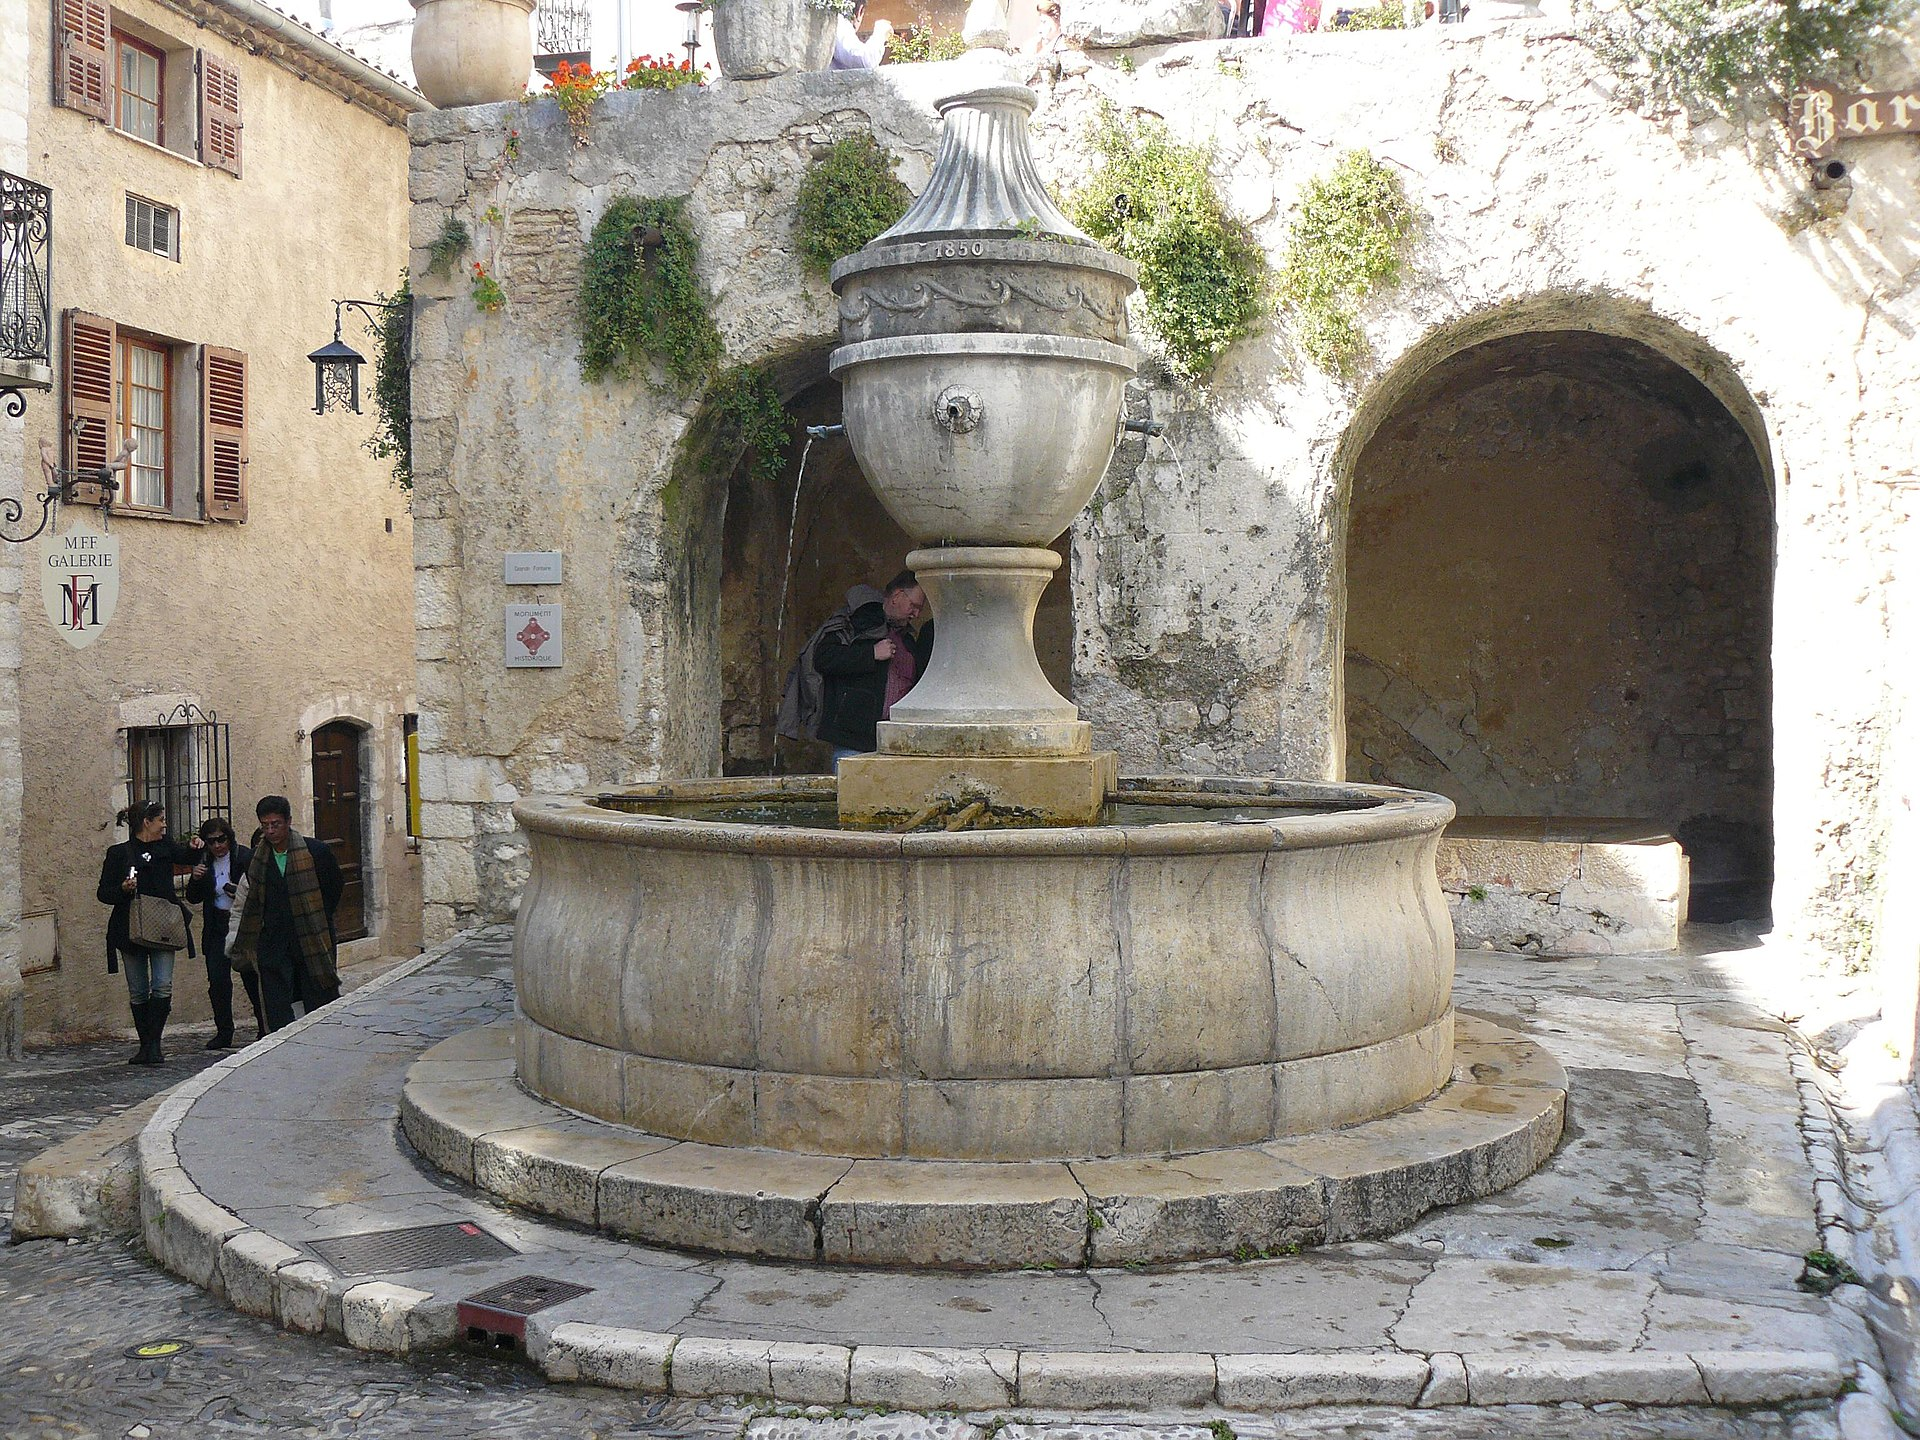 fountains in france wikipedia. Black Bedroom Furniture Sets. Home Design Ideas